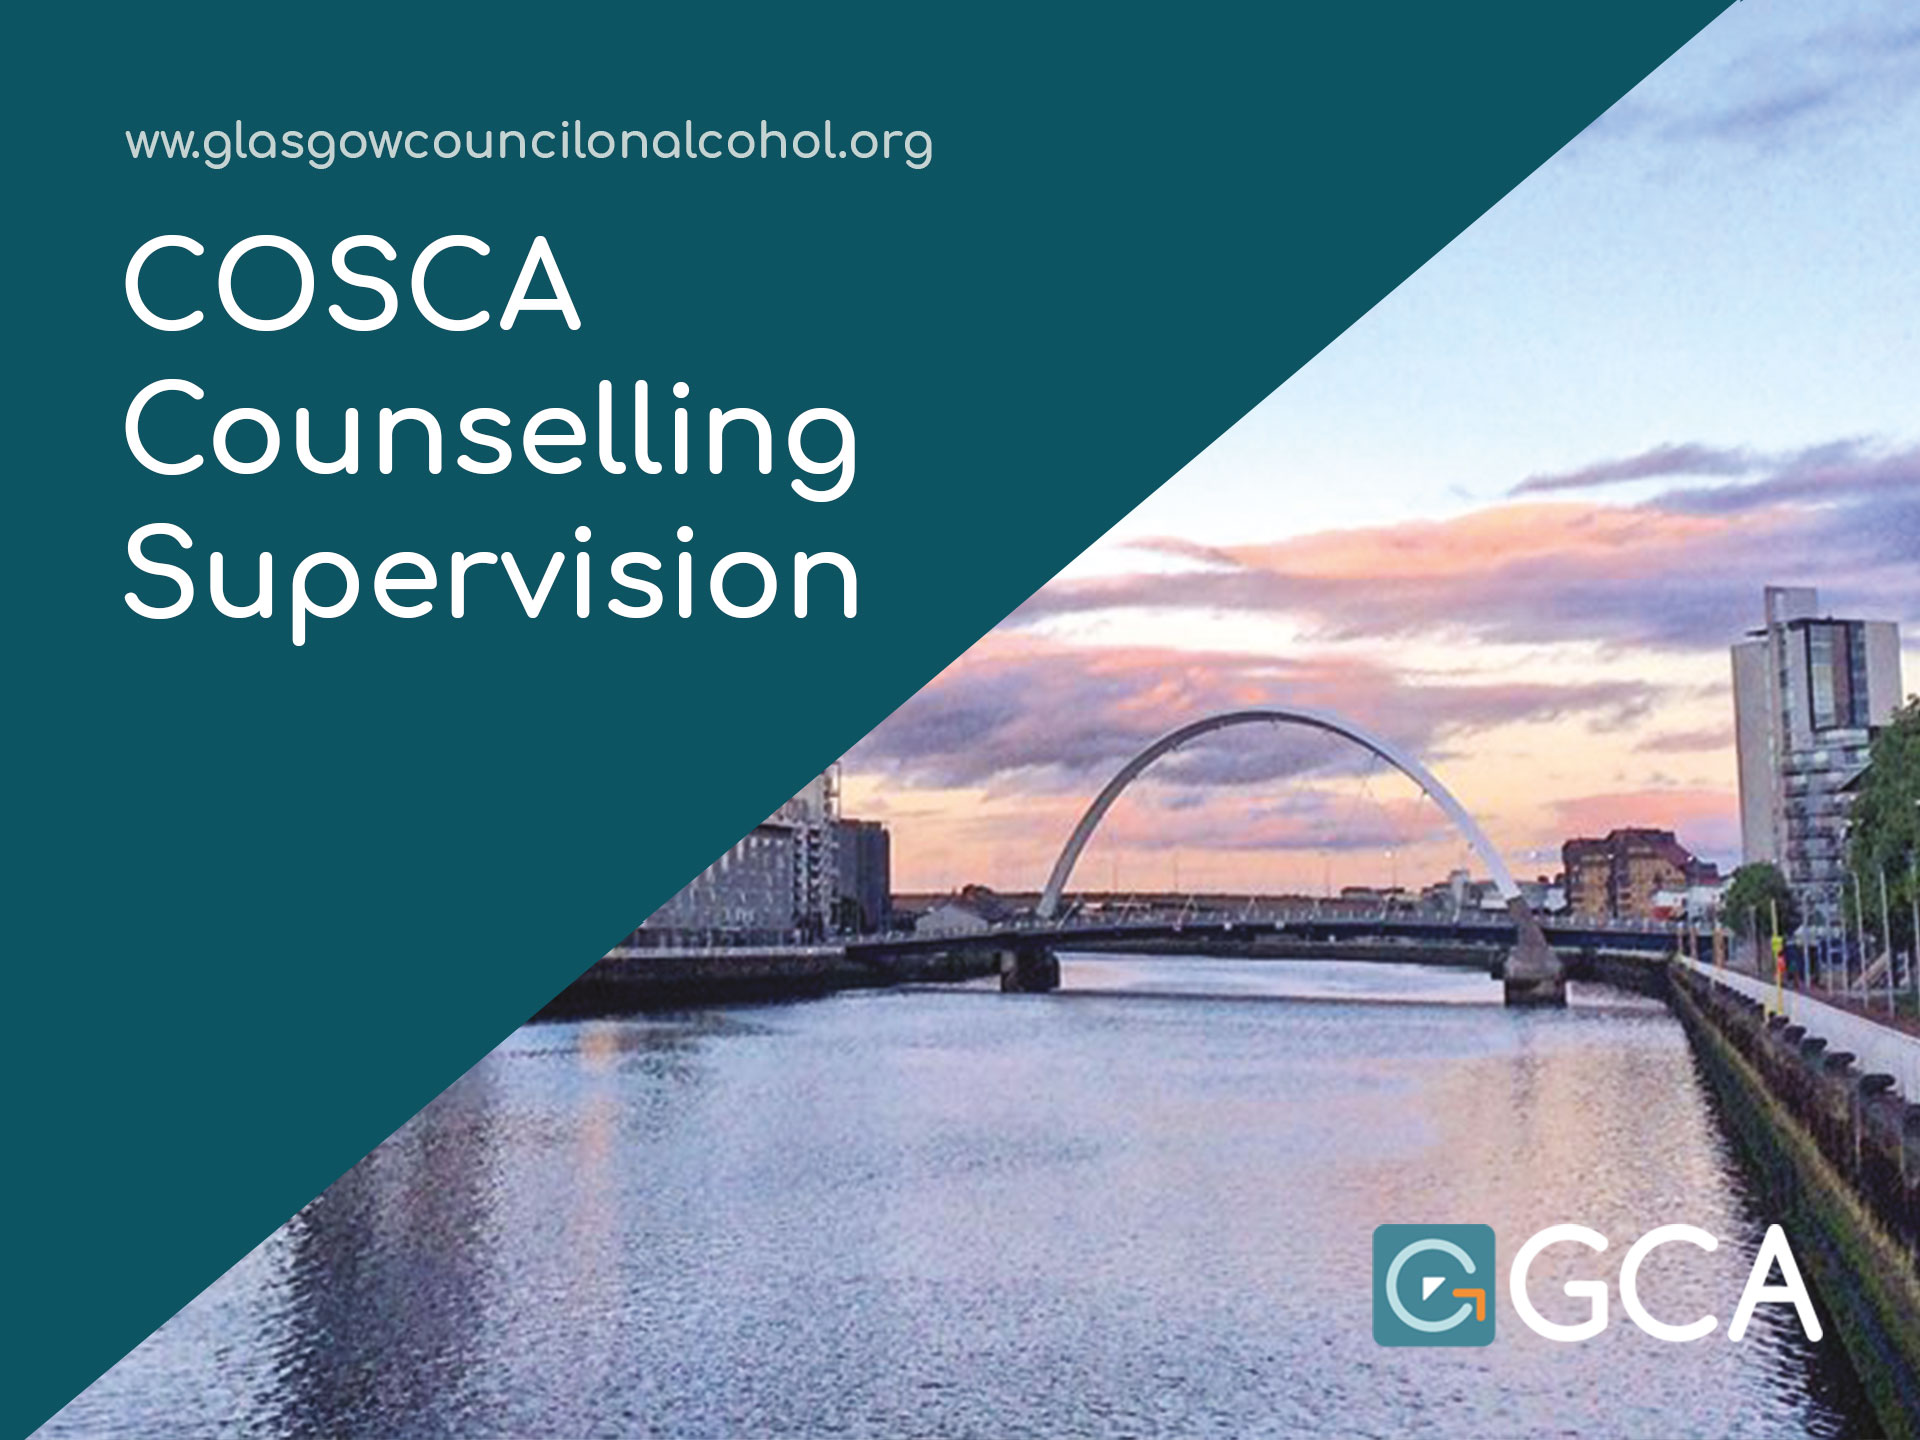 counselling-supervision-gca